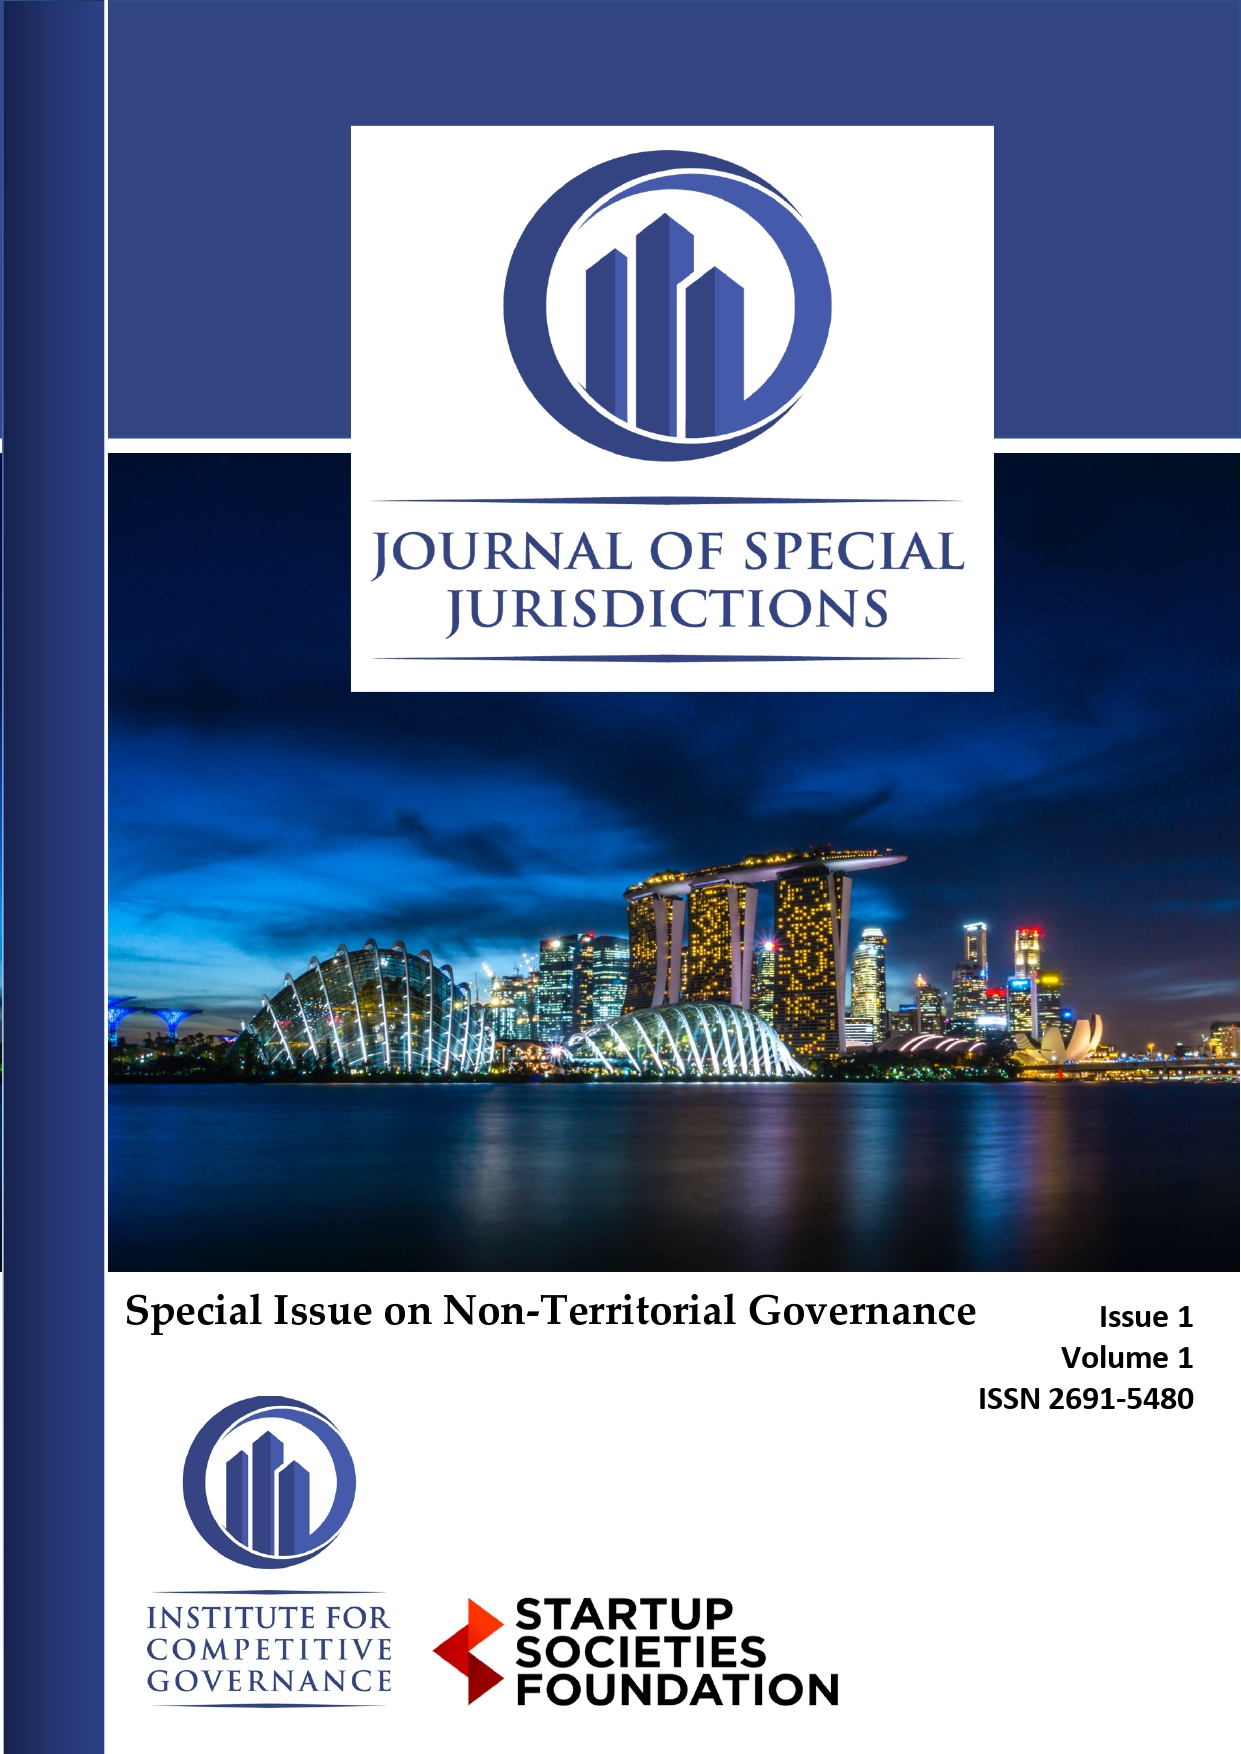 Journal of Special Jurisdictions non-territorial governance Startup Societies Foundation